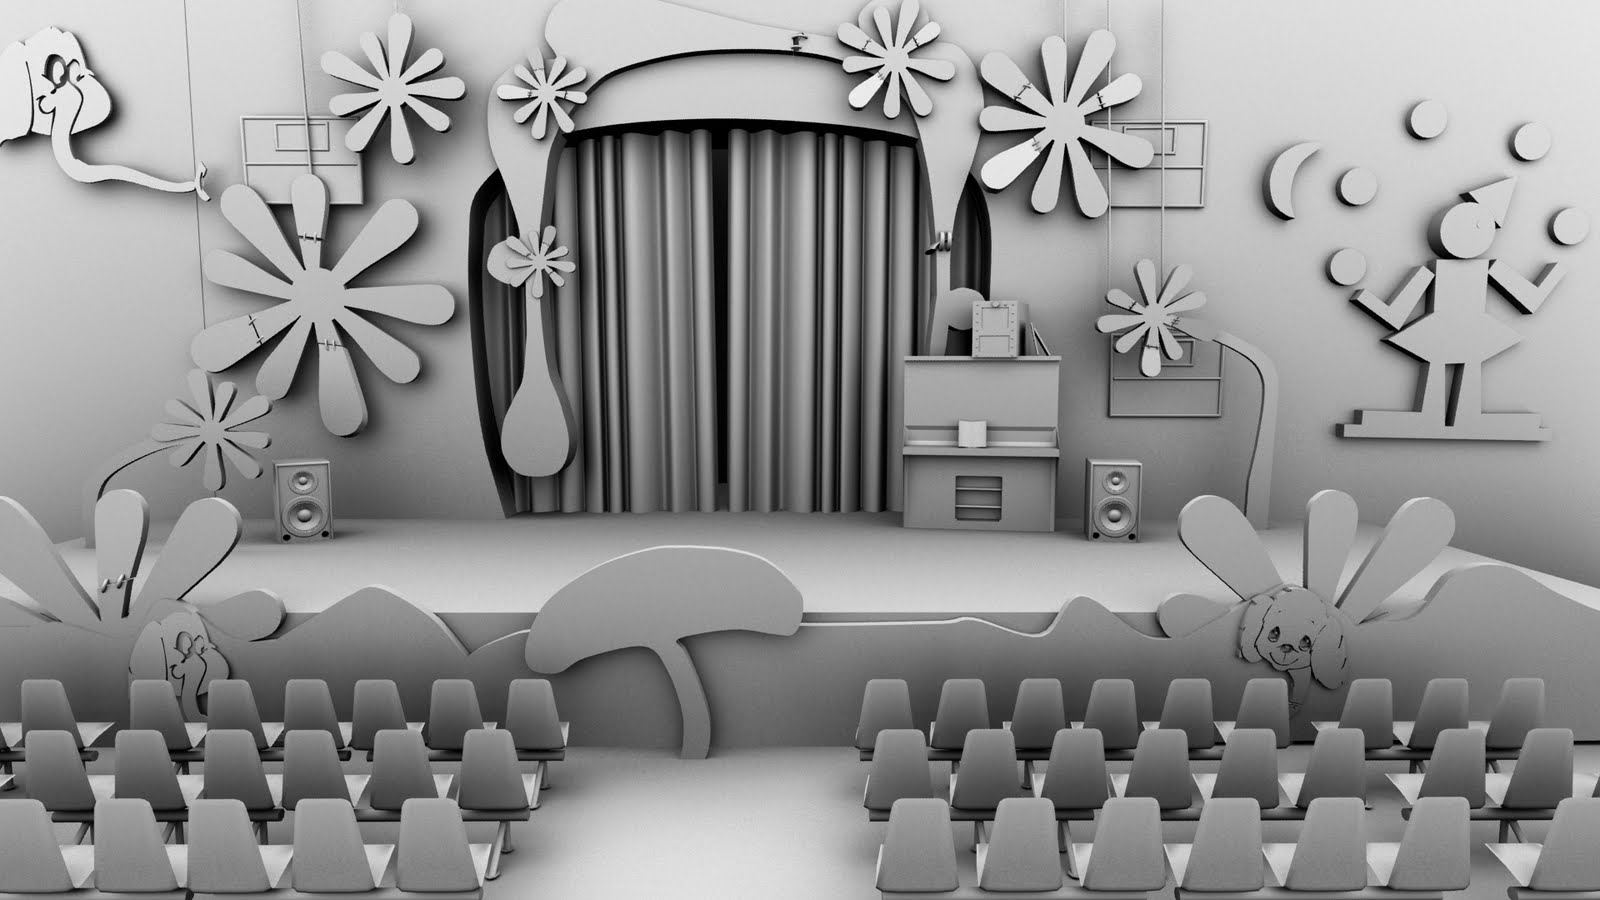 Sonu Deol's 3D Art World: Background Design For Animated Movie